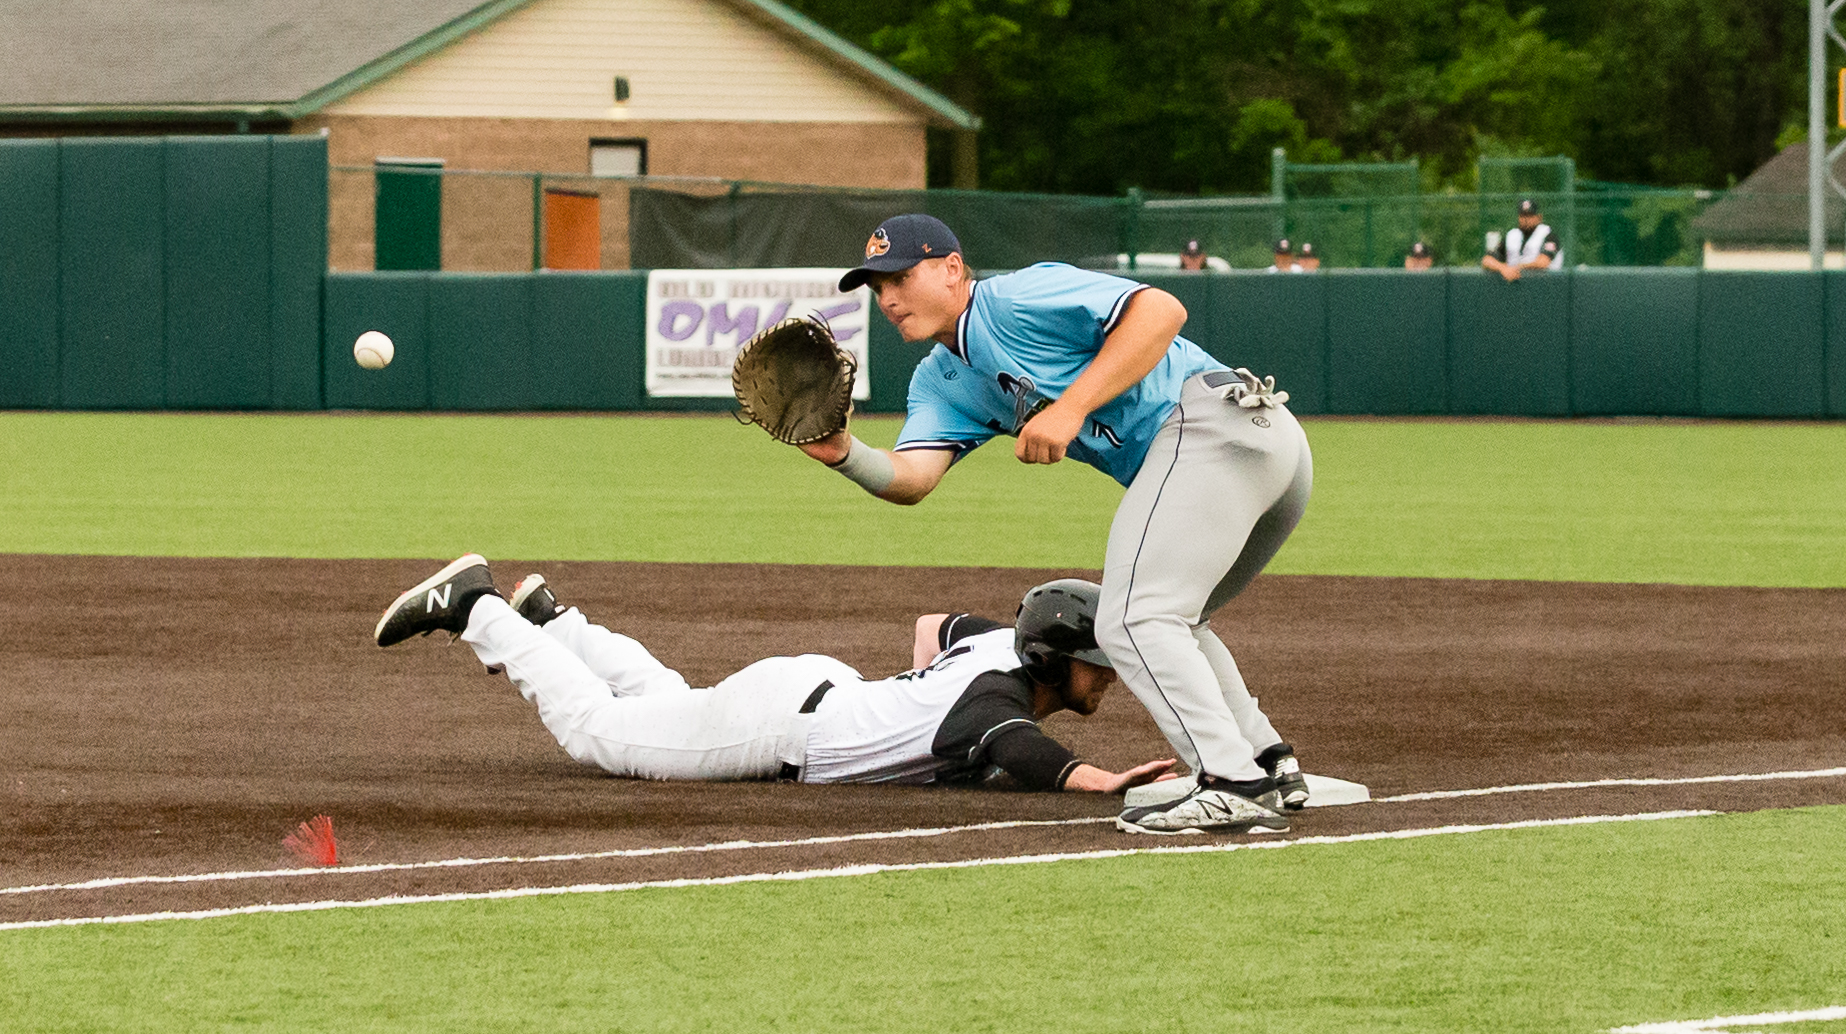 Rascals Split Doubleheader With Grizzlies